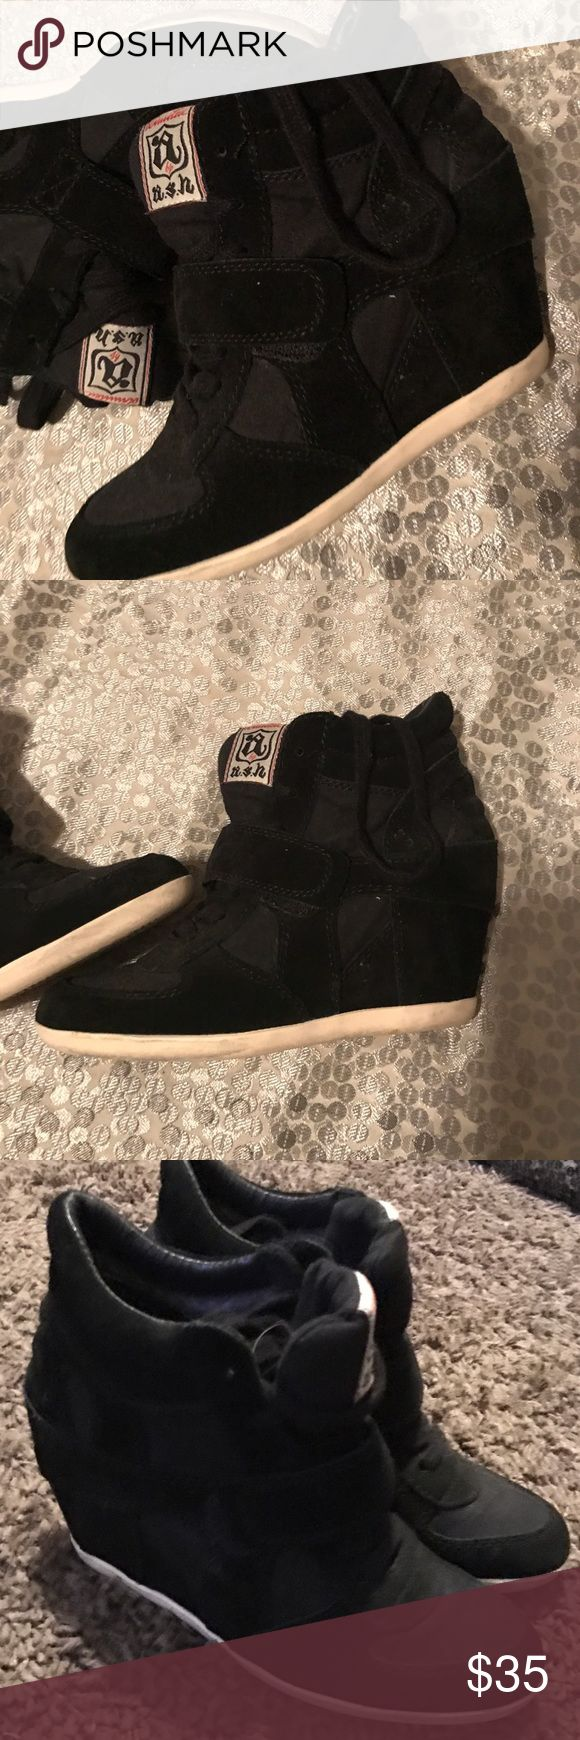 Black sneaker wedges size 7 Black Limited ASH sneaker wedge, laces up with heel. Size 7. In pre loved condition. Offers accepted Shoes Lace Up Boots